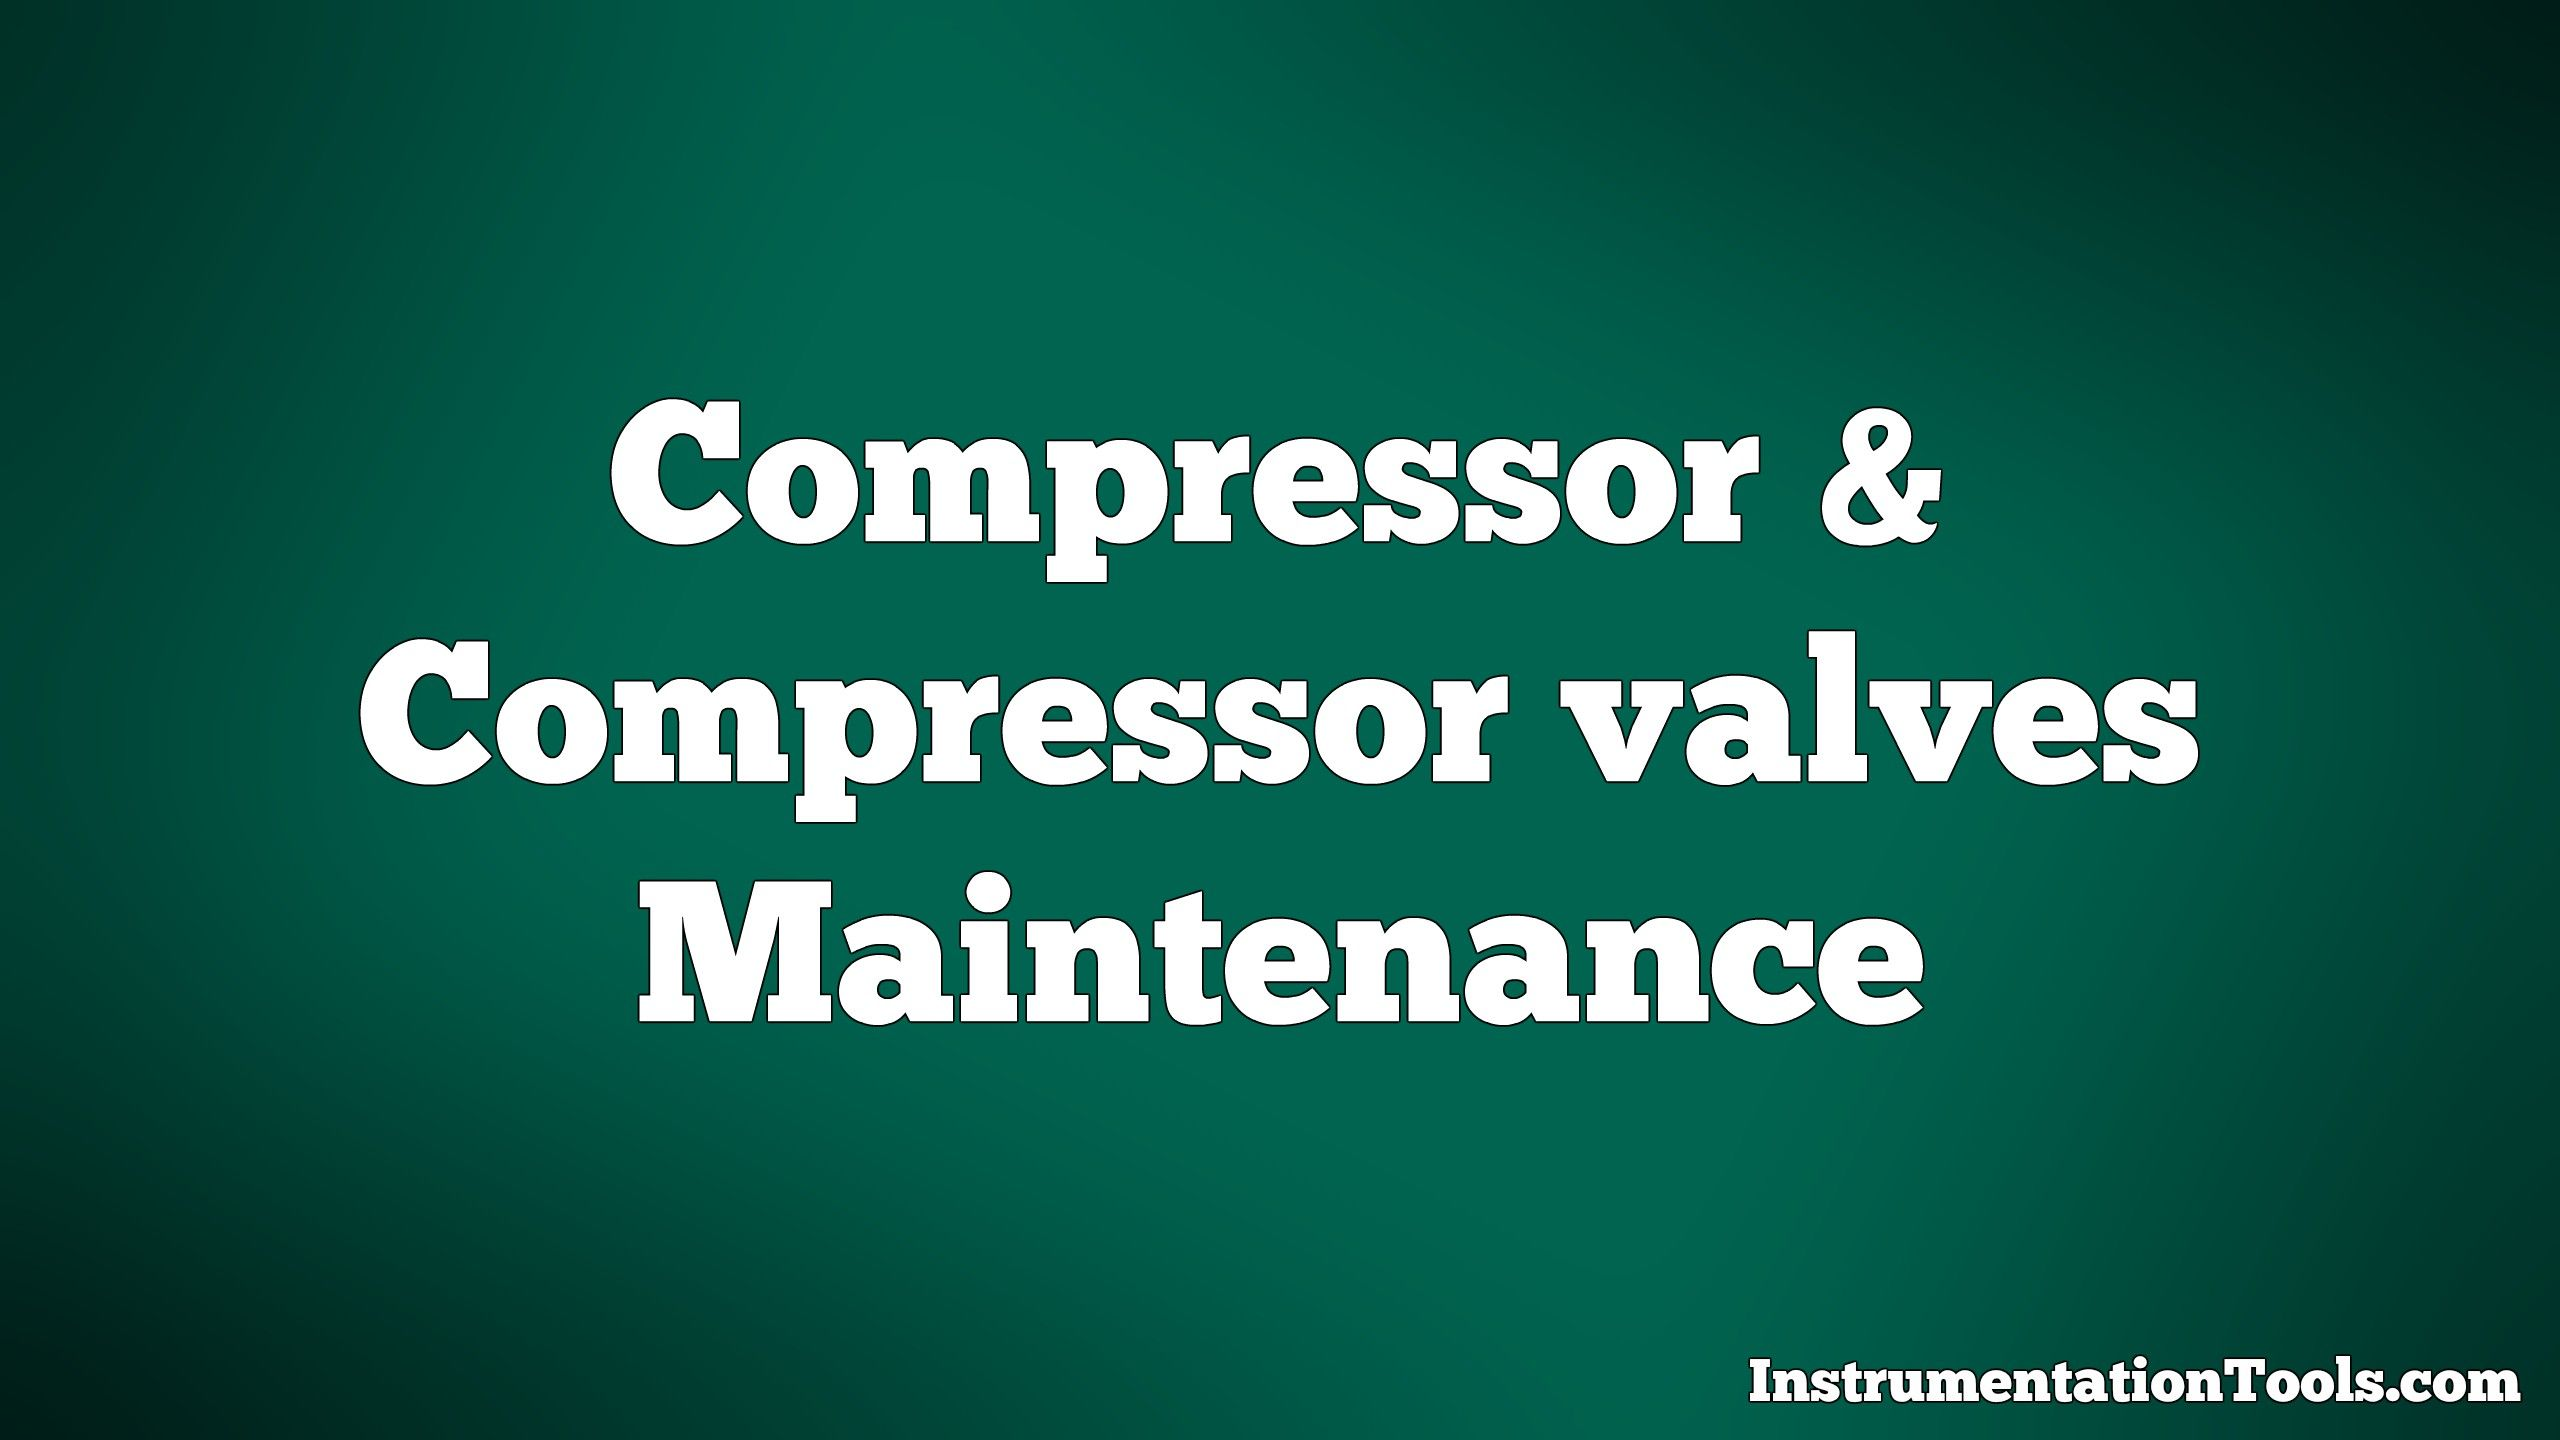 Compressor & Compressor Valves Maintenance